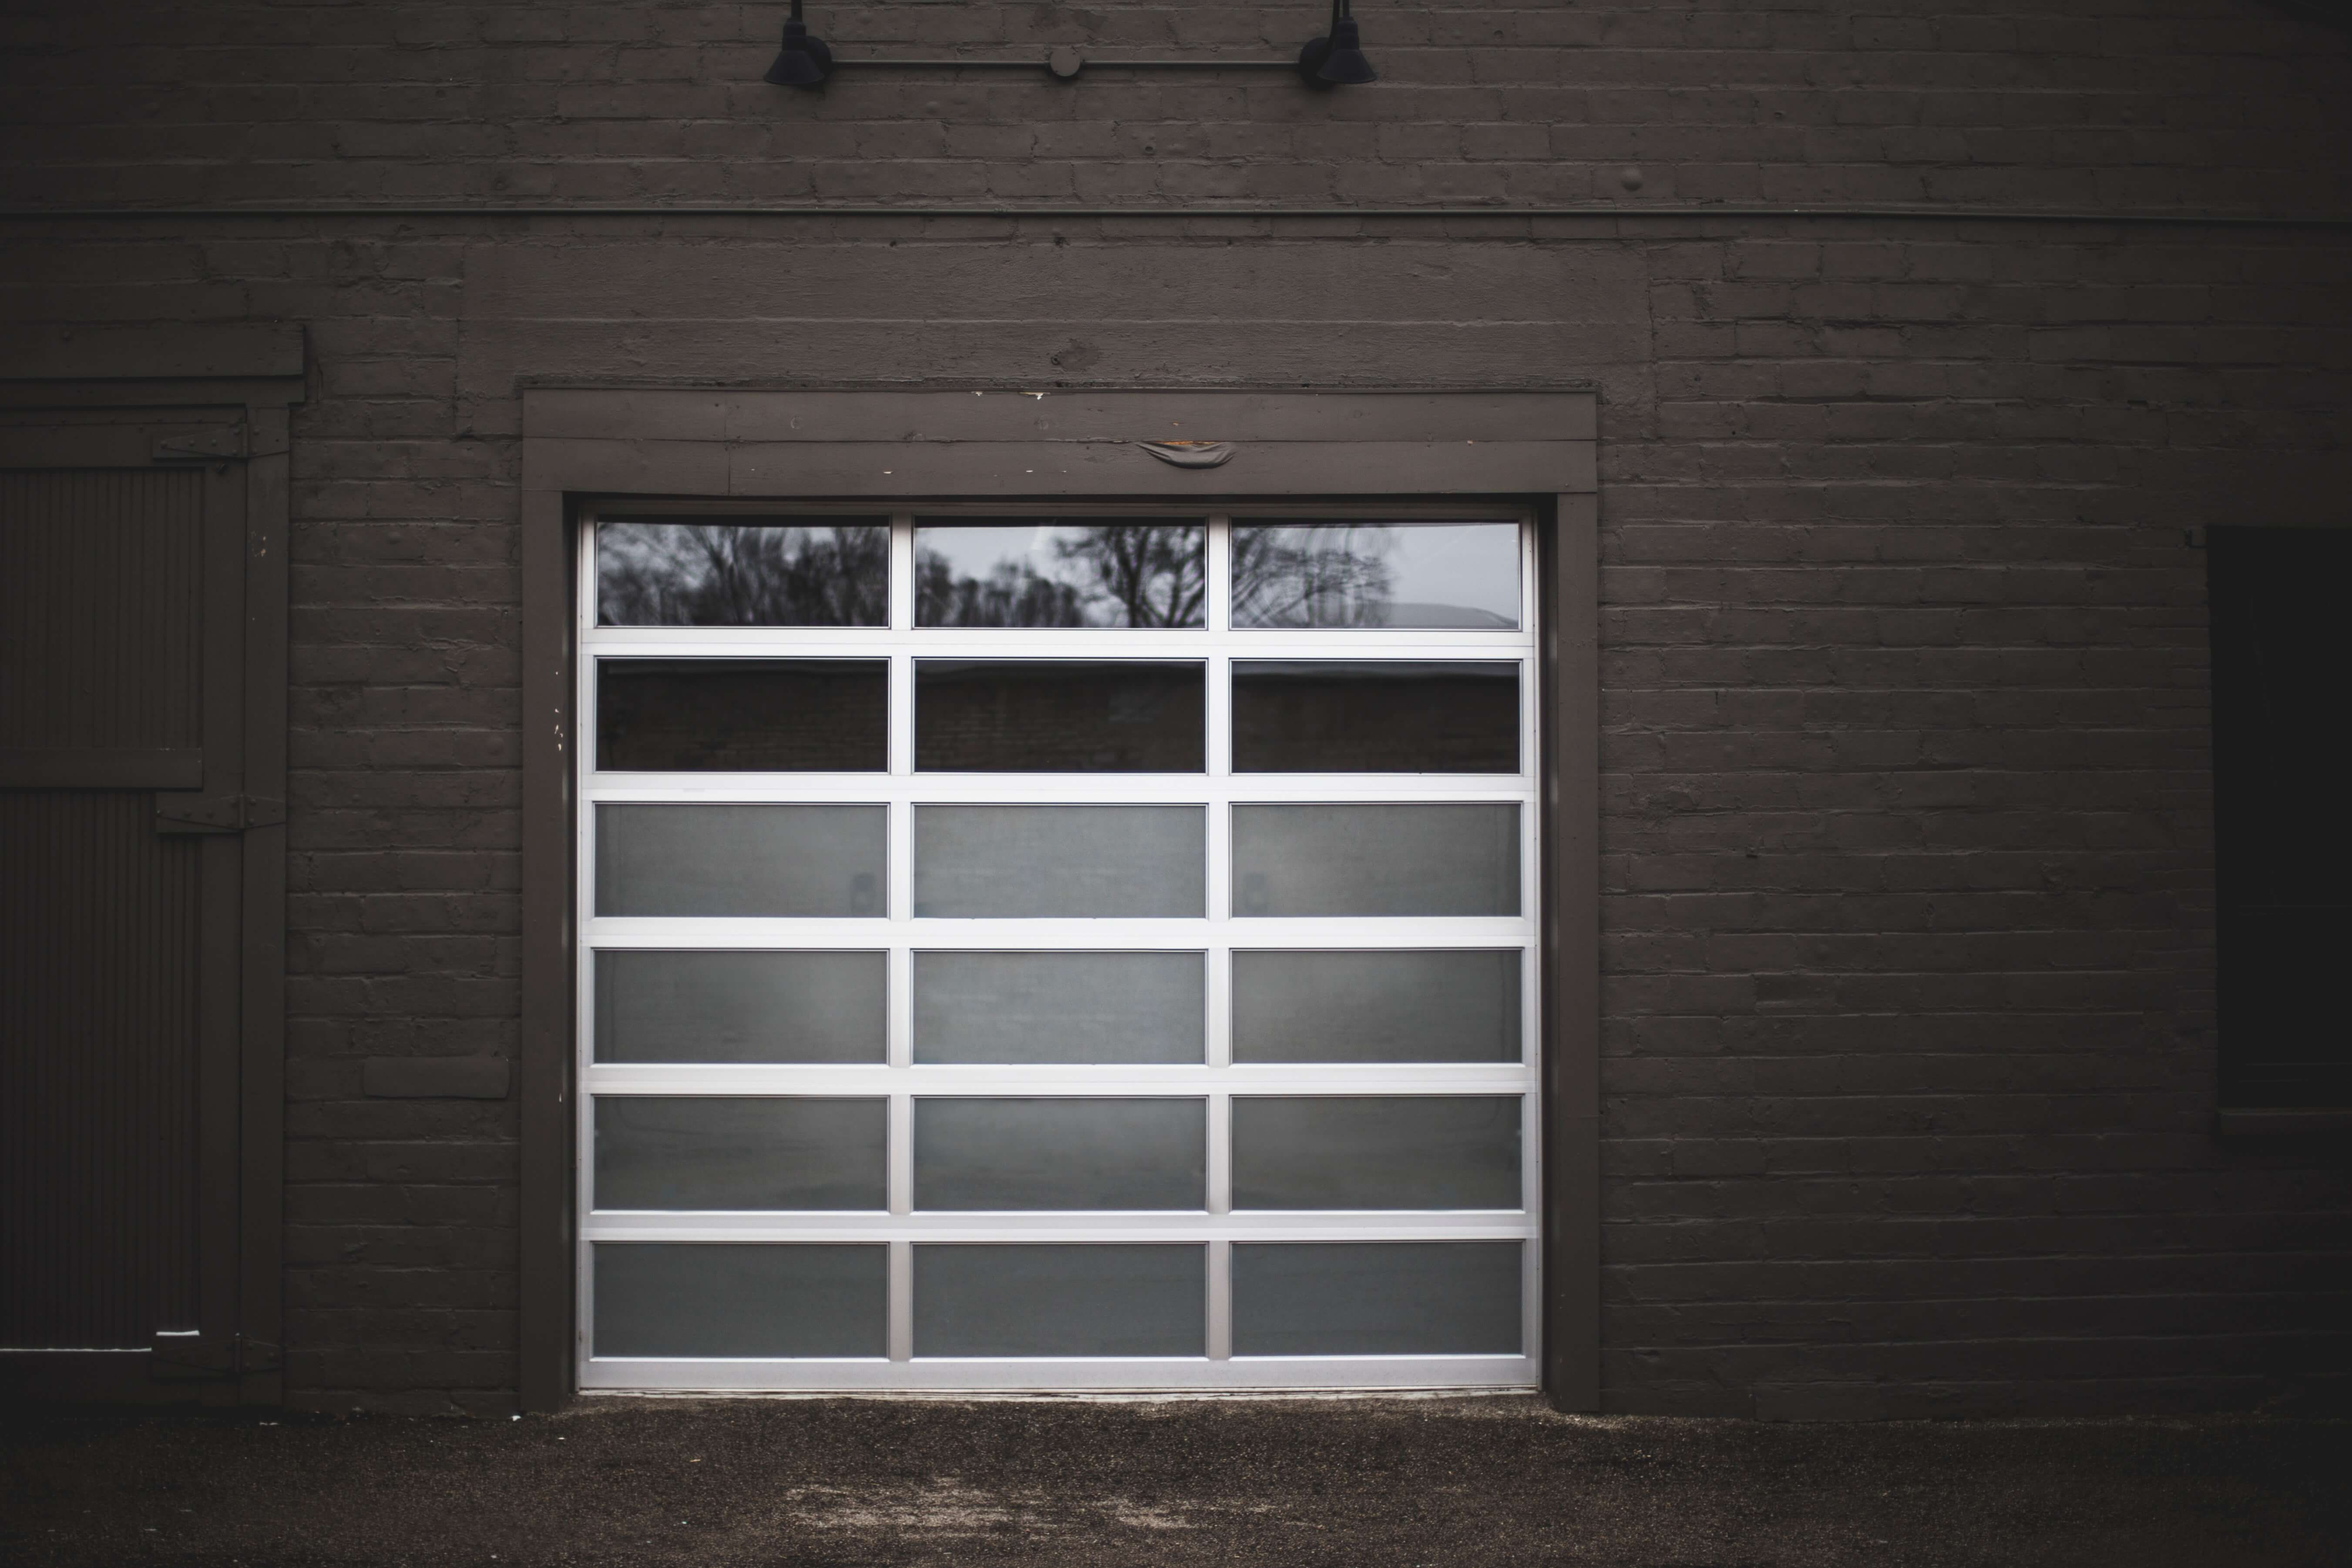 9 Of The Best Garage Conversion Ideas For Your Home Garage Door Styles Garage Doors Garage Door Design